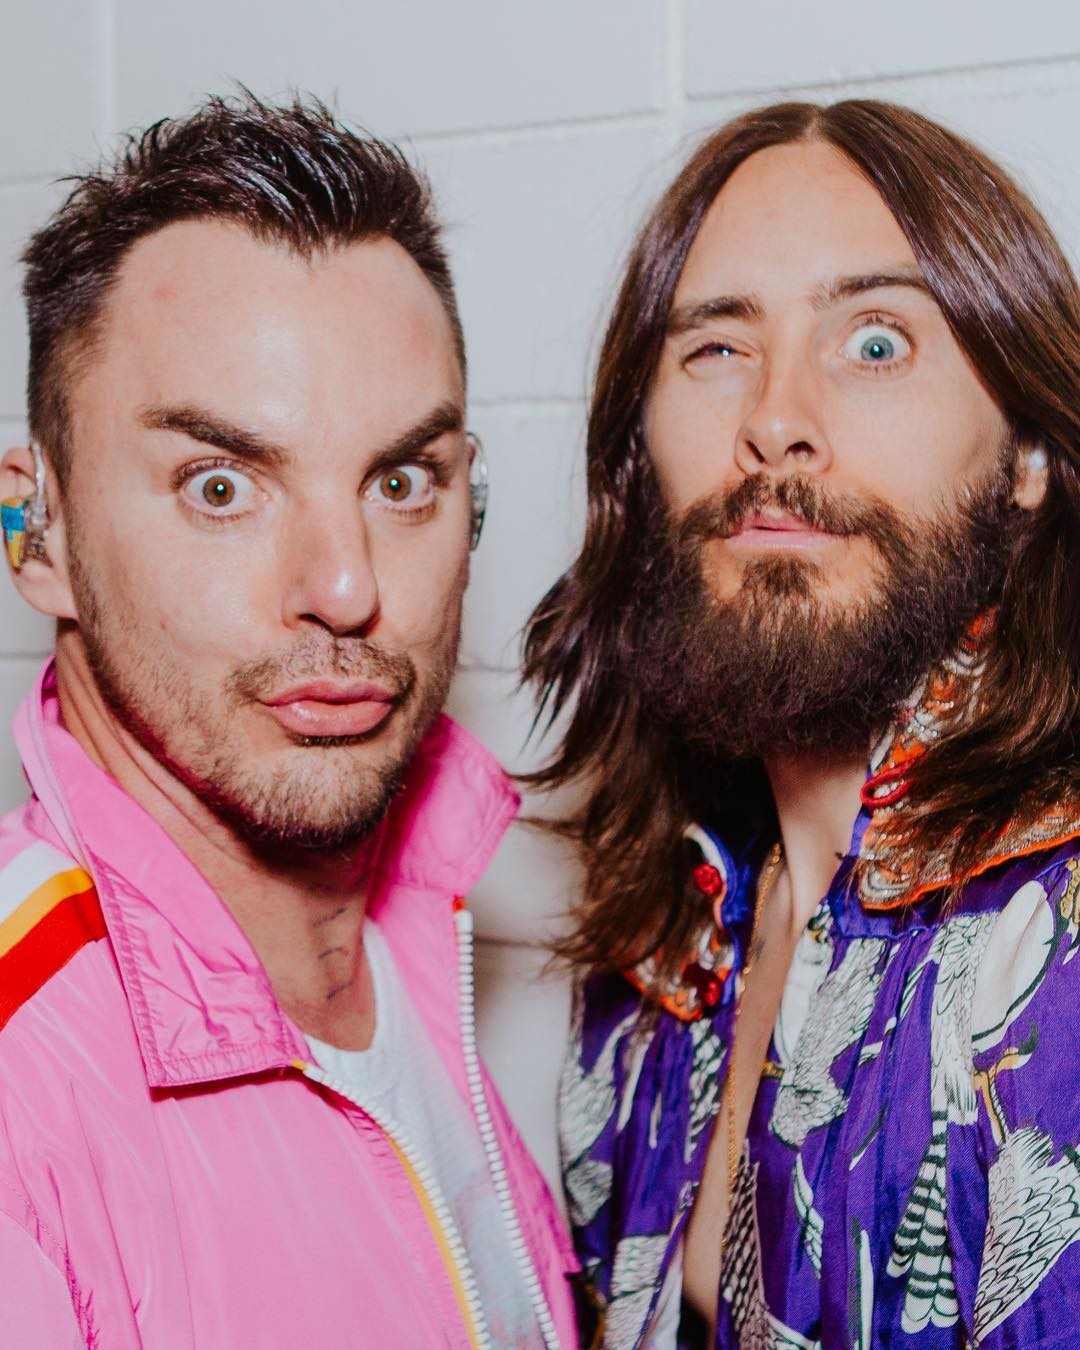 #SMIZE: smile with your eyes ��. Oslo + Helsinki, we're coming for ya!!! #MONOLITHTOUR https://t.co/Kr4Mh4ZOJ5